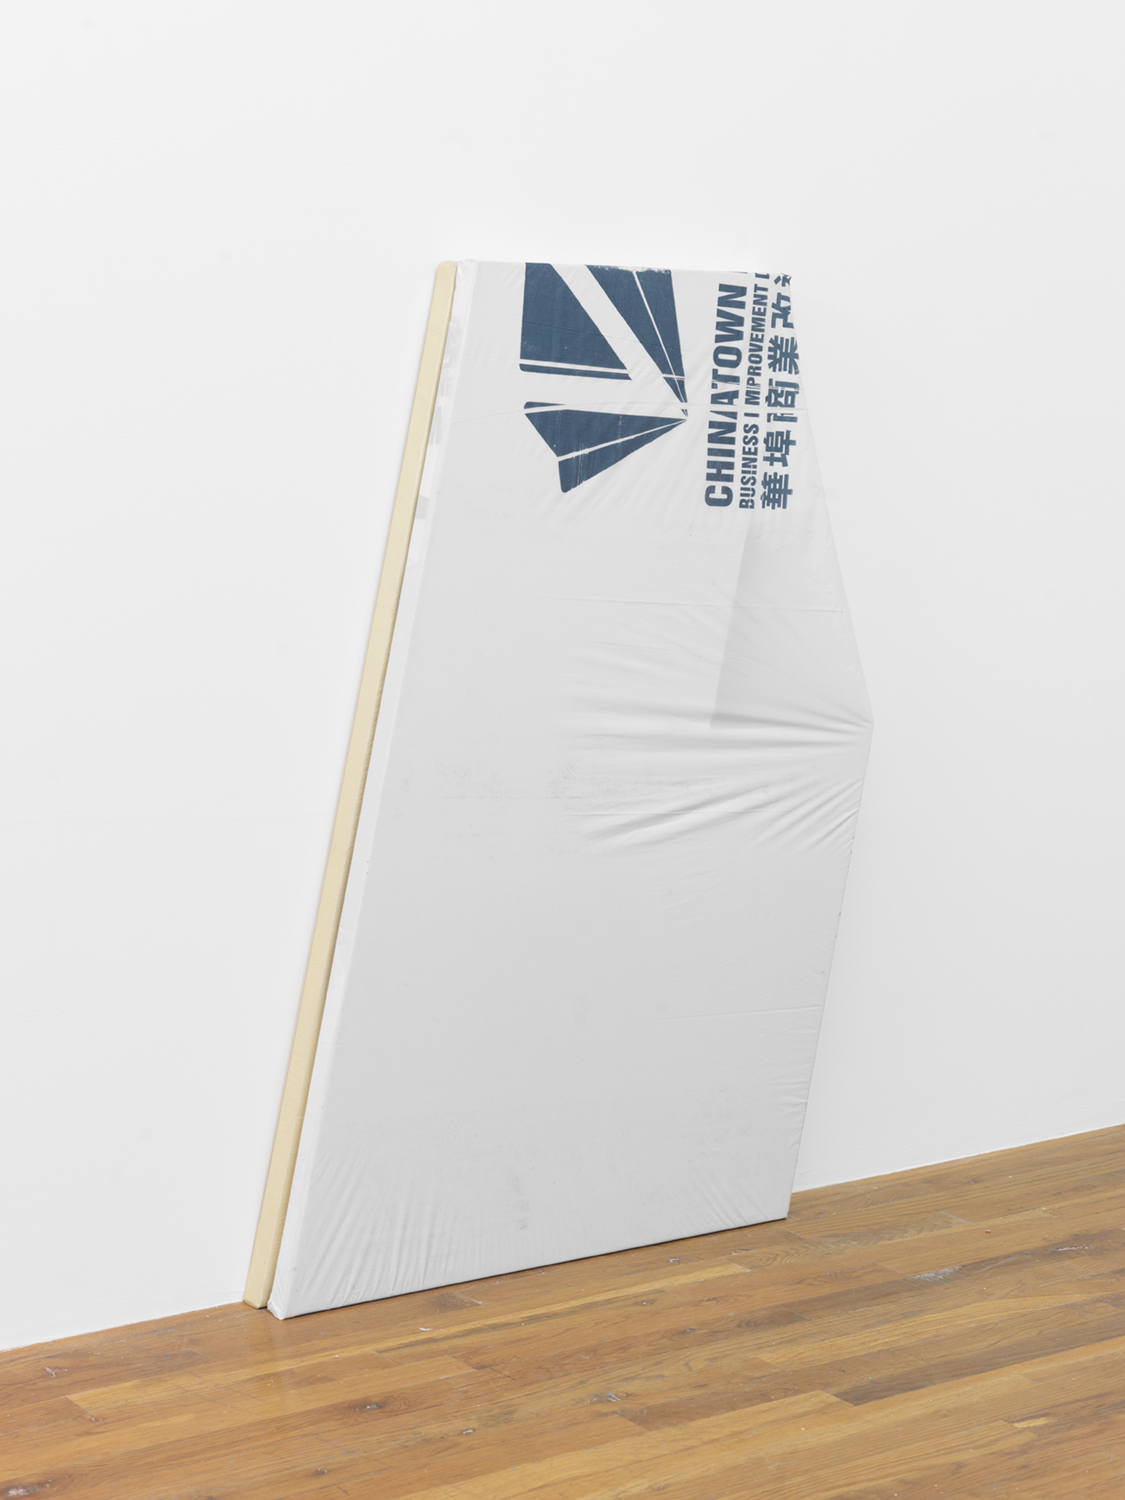 I'll Get That to Go  2014 2 modified stretcher bars, canvas, dust sheet and Chinatown refuse sack 46 x 28 x 3 inches